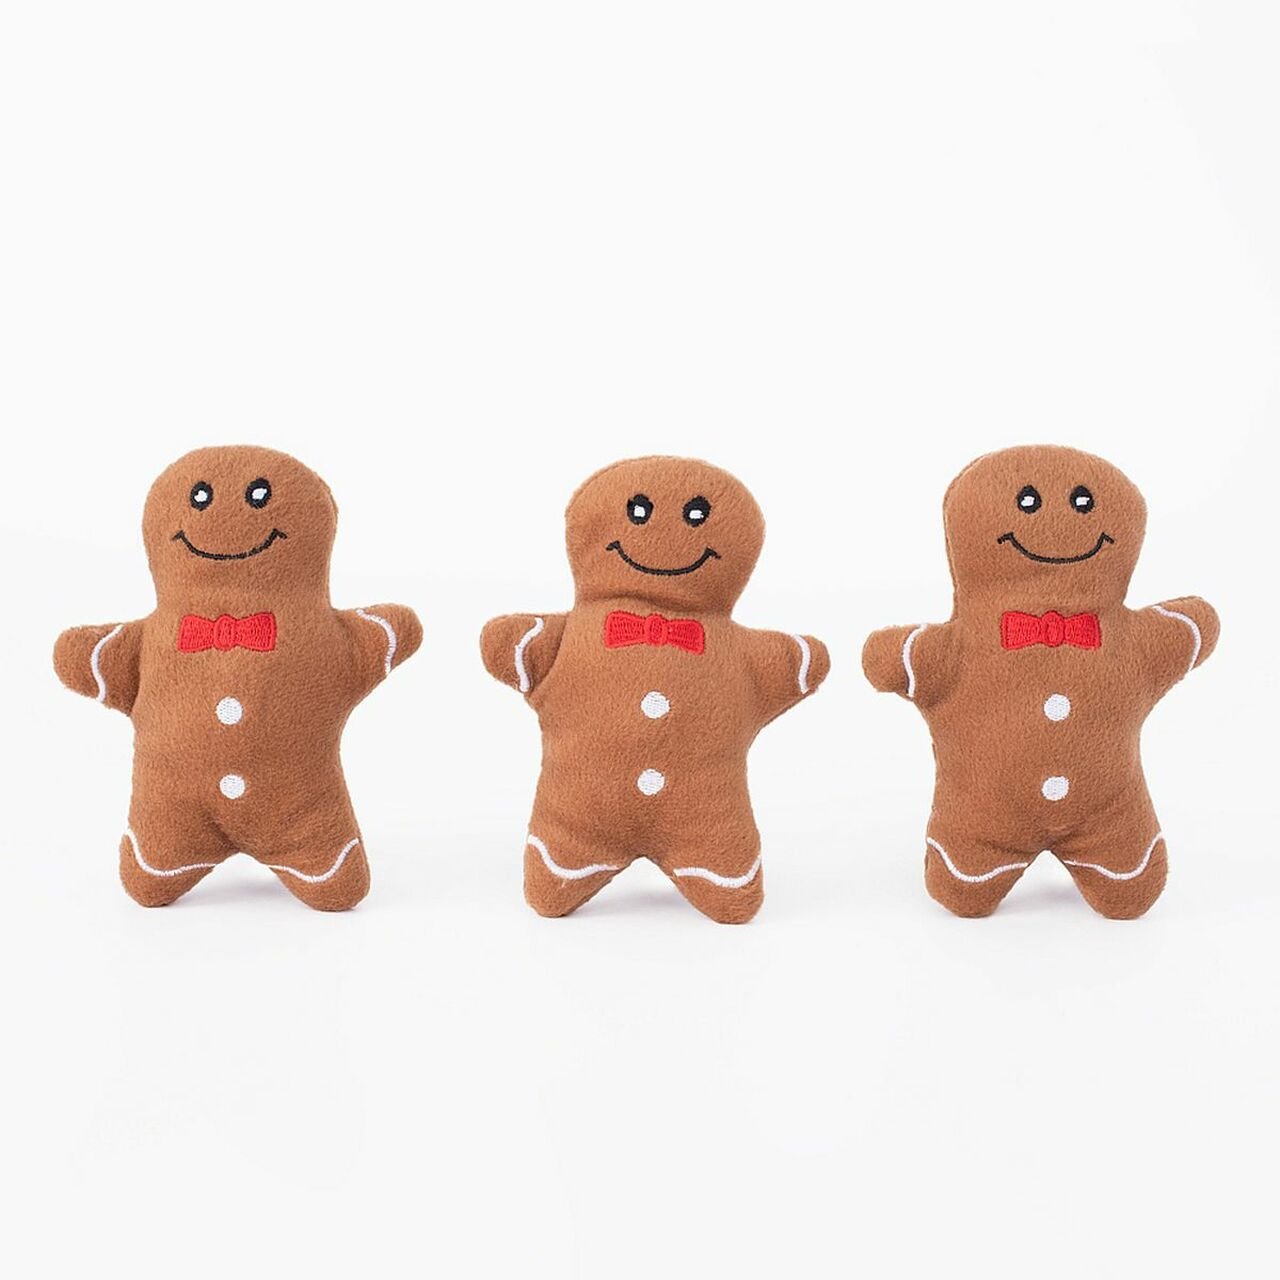 ZippyPaws Holiday Miniz 3-Pack - Gingerbread Men